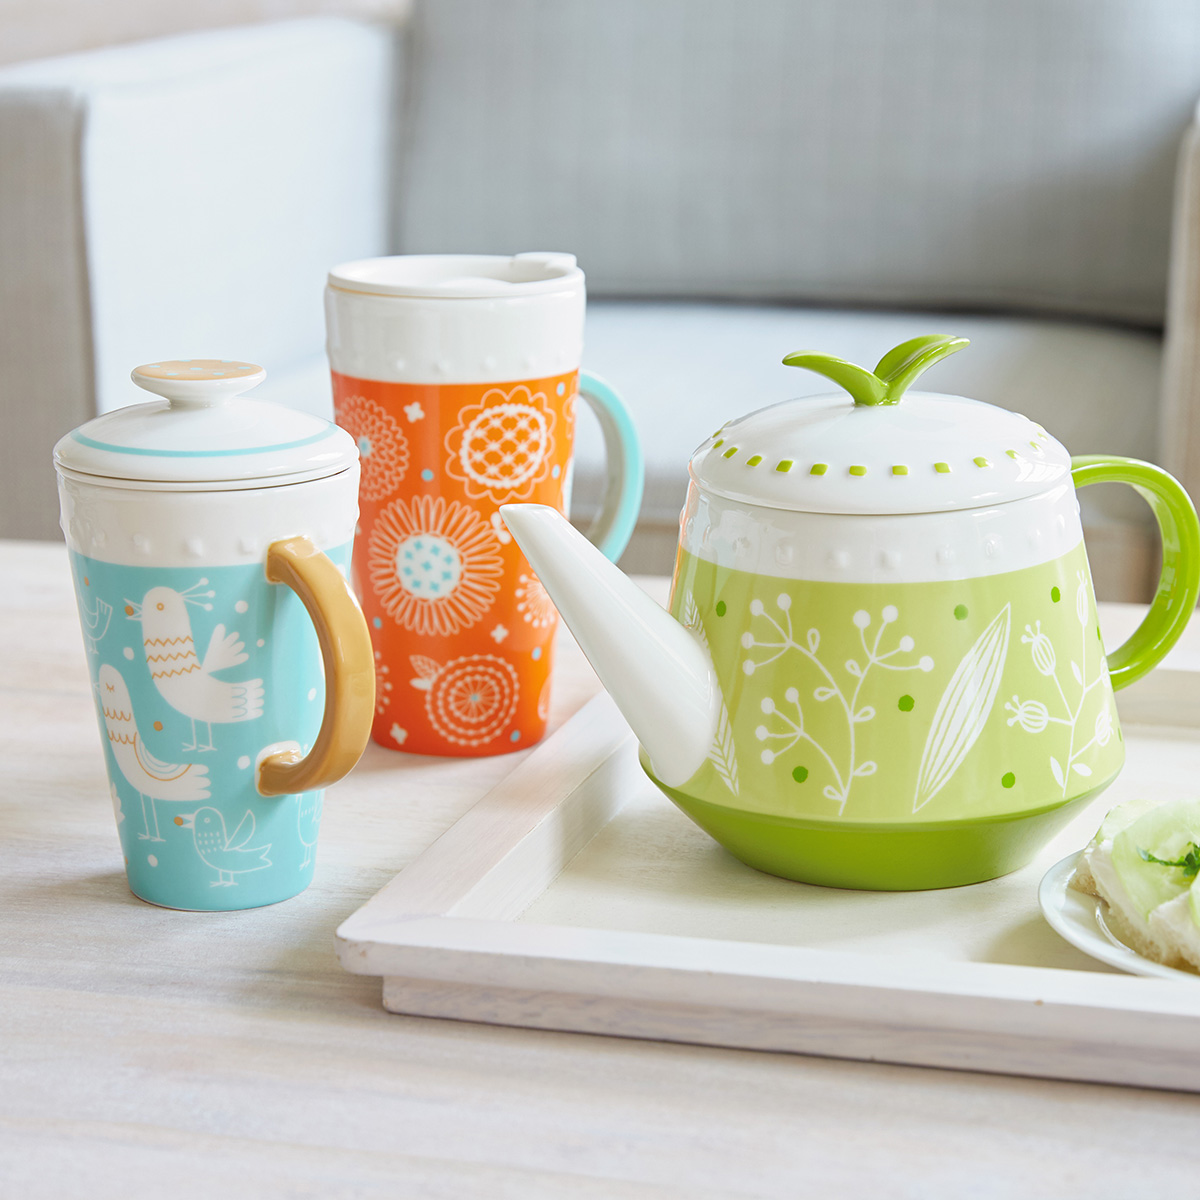 Crafters & Co. Tea Timing